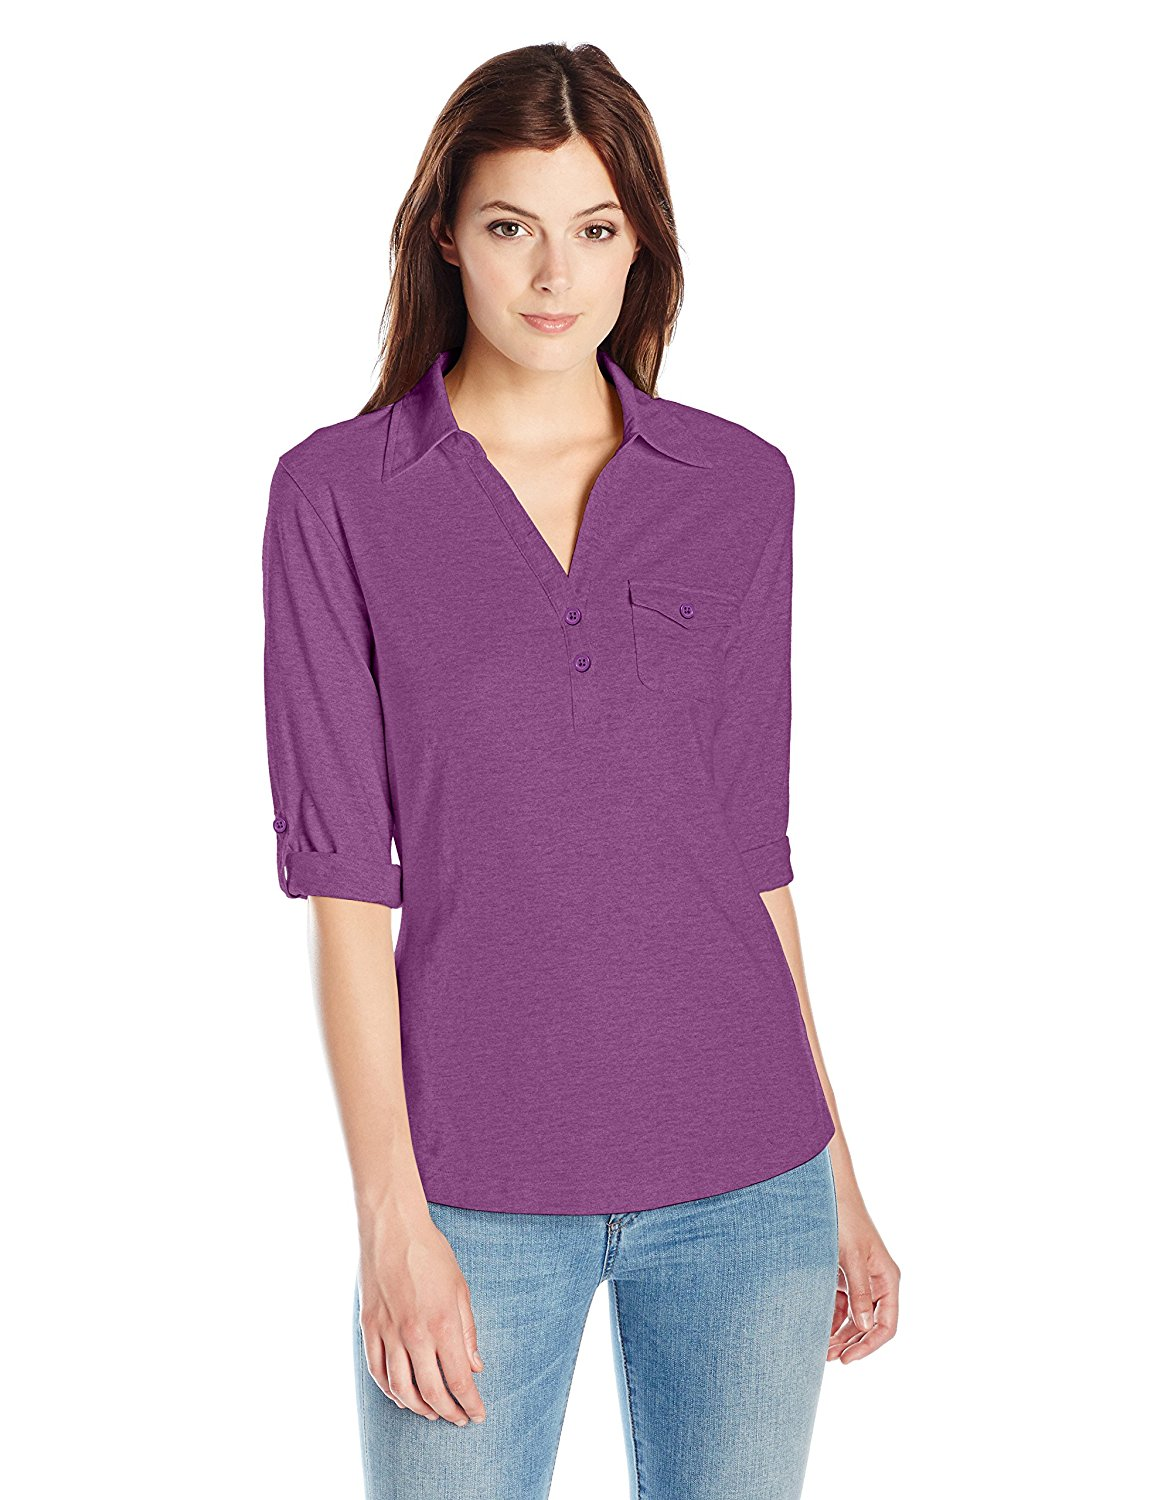 7f8b3183a32 Get Quotations · Riders by Lee Indigo Women s 3 4 Sleeve Roll Tab Sleeve  Knit Henley Shirt